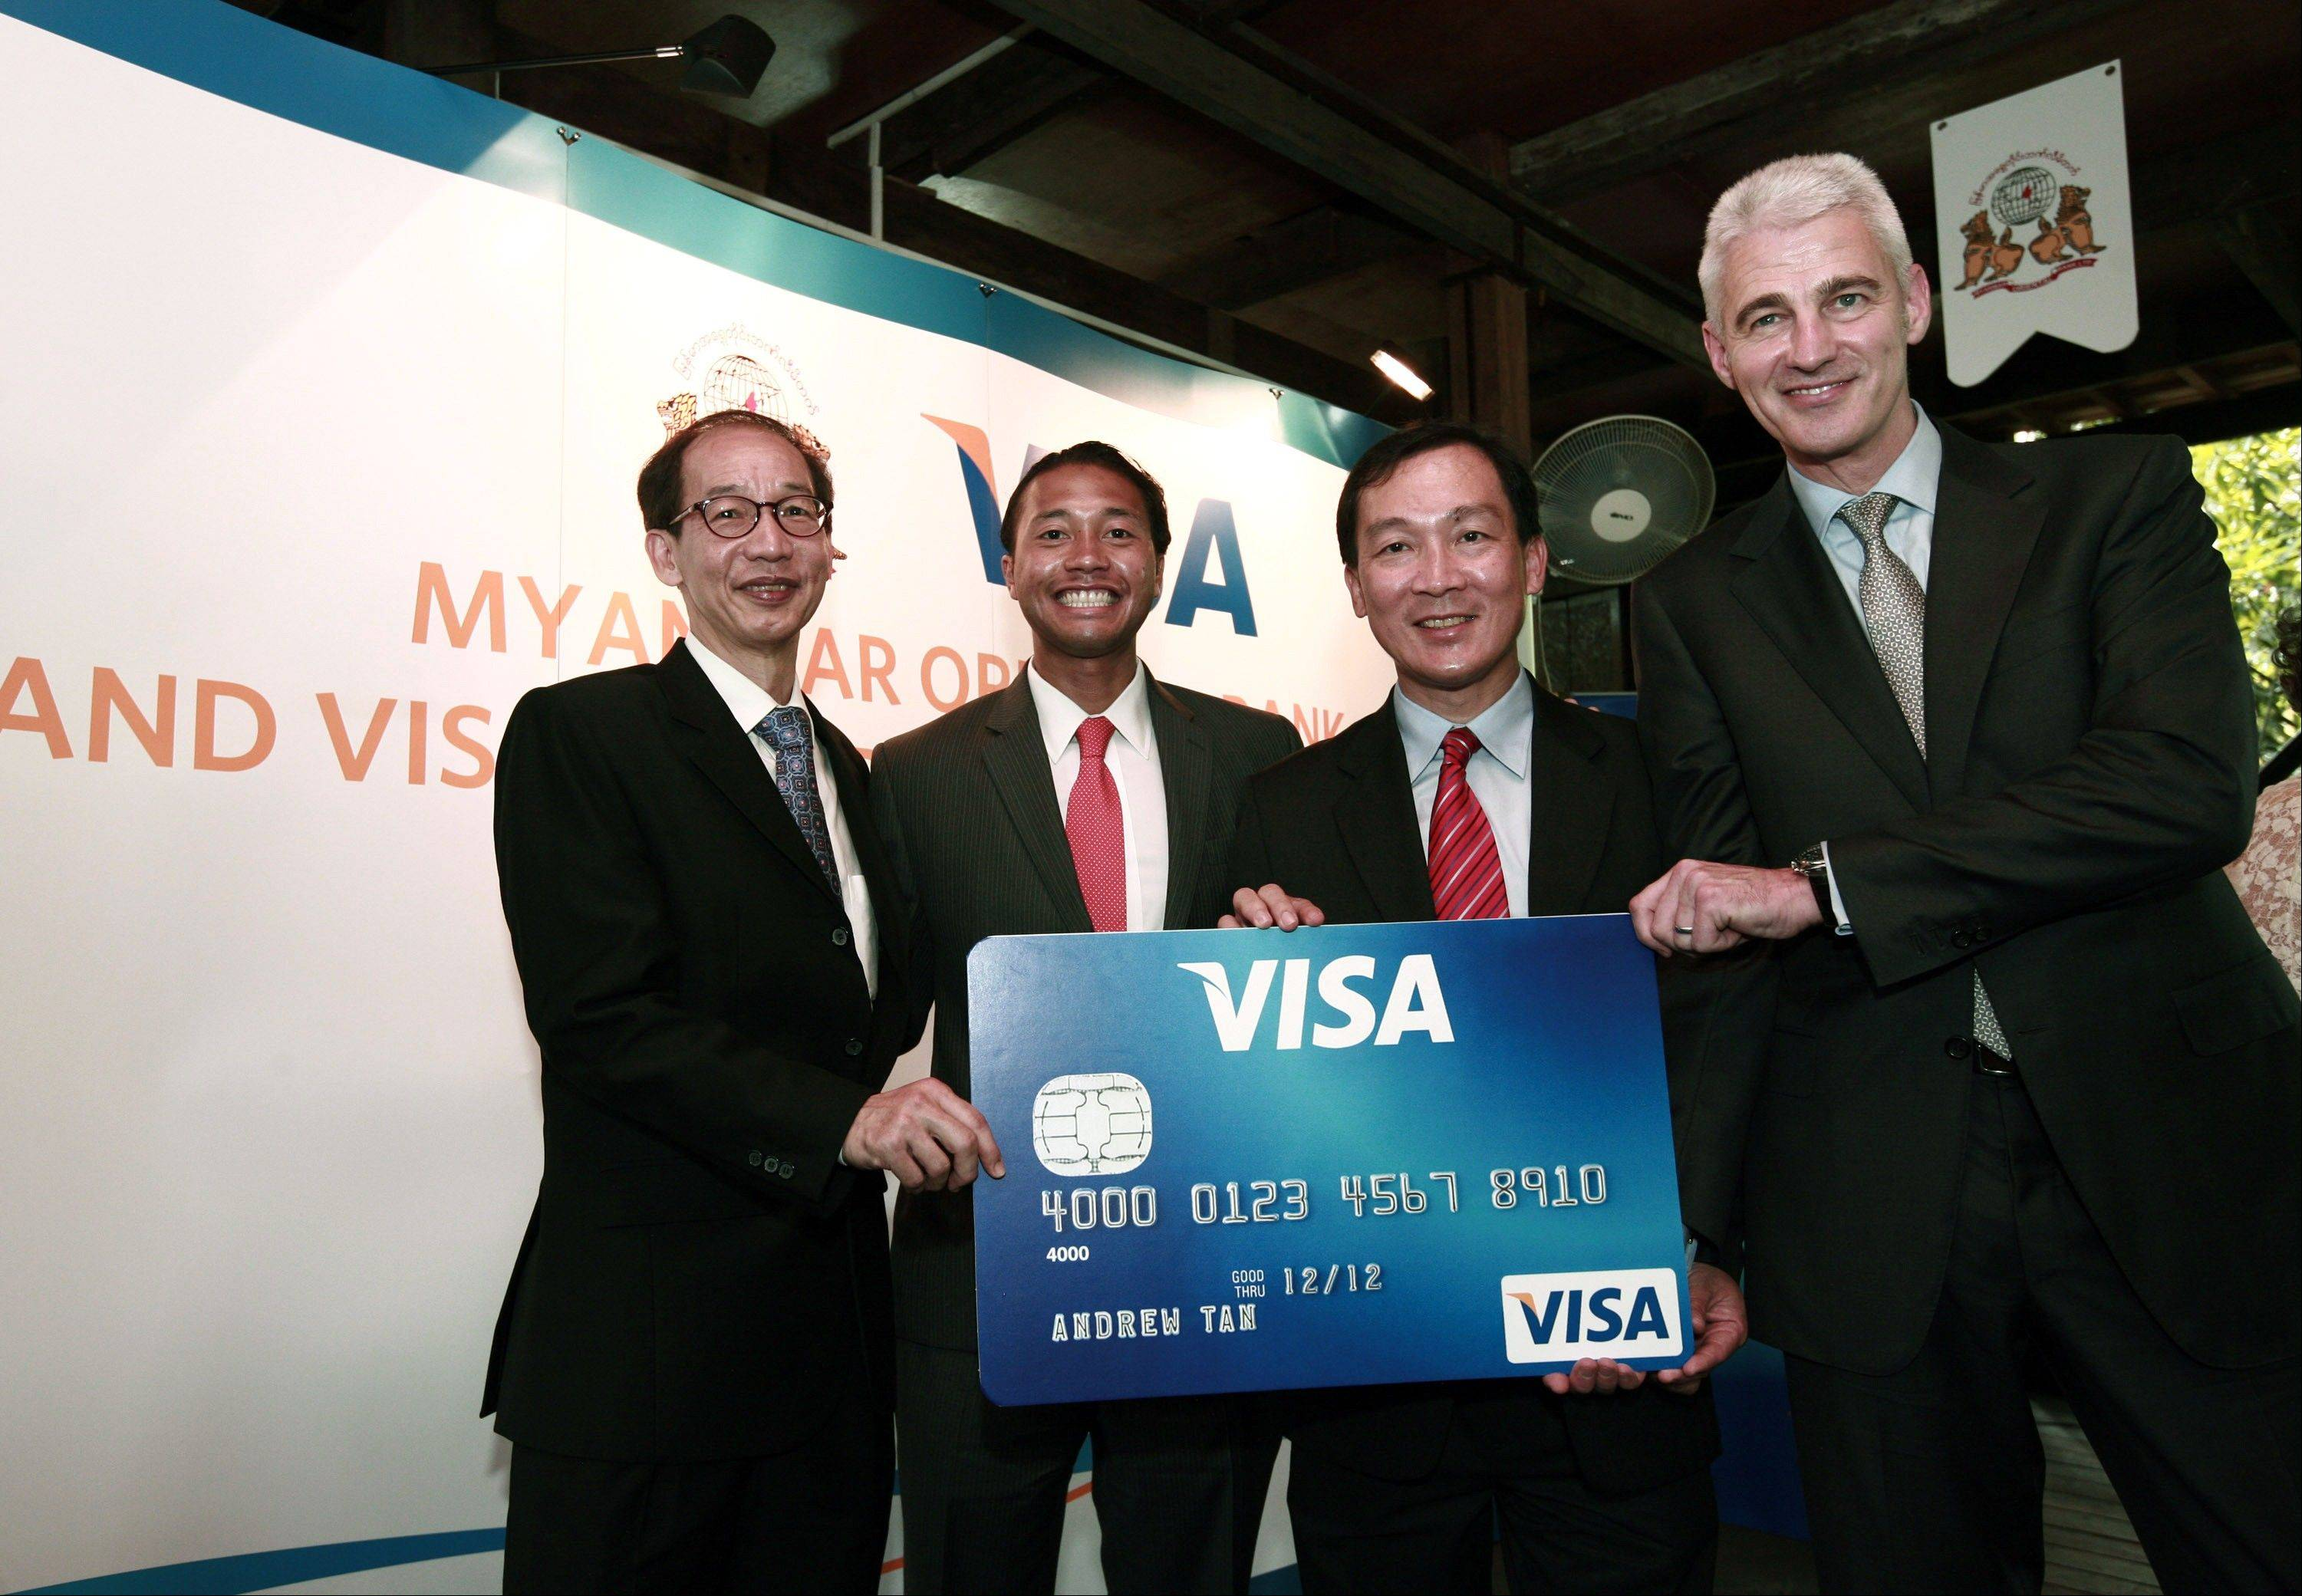 Paul Cook, right, head of Acceptance for Visa in Asia Pacific, central Europe, Middle East and Africa; Somboon Krobteeranon, second from right, country manager of Myanmar and Thailand; and two unidentified officials pose for photo with an oversized Visa card during a launching ceremony of the use of Visa cards for payments in Myanmar.